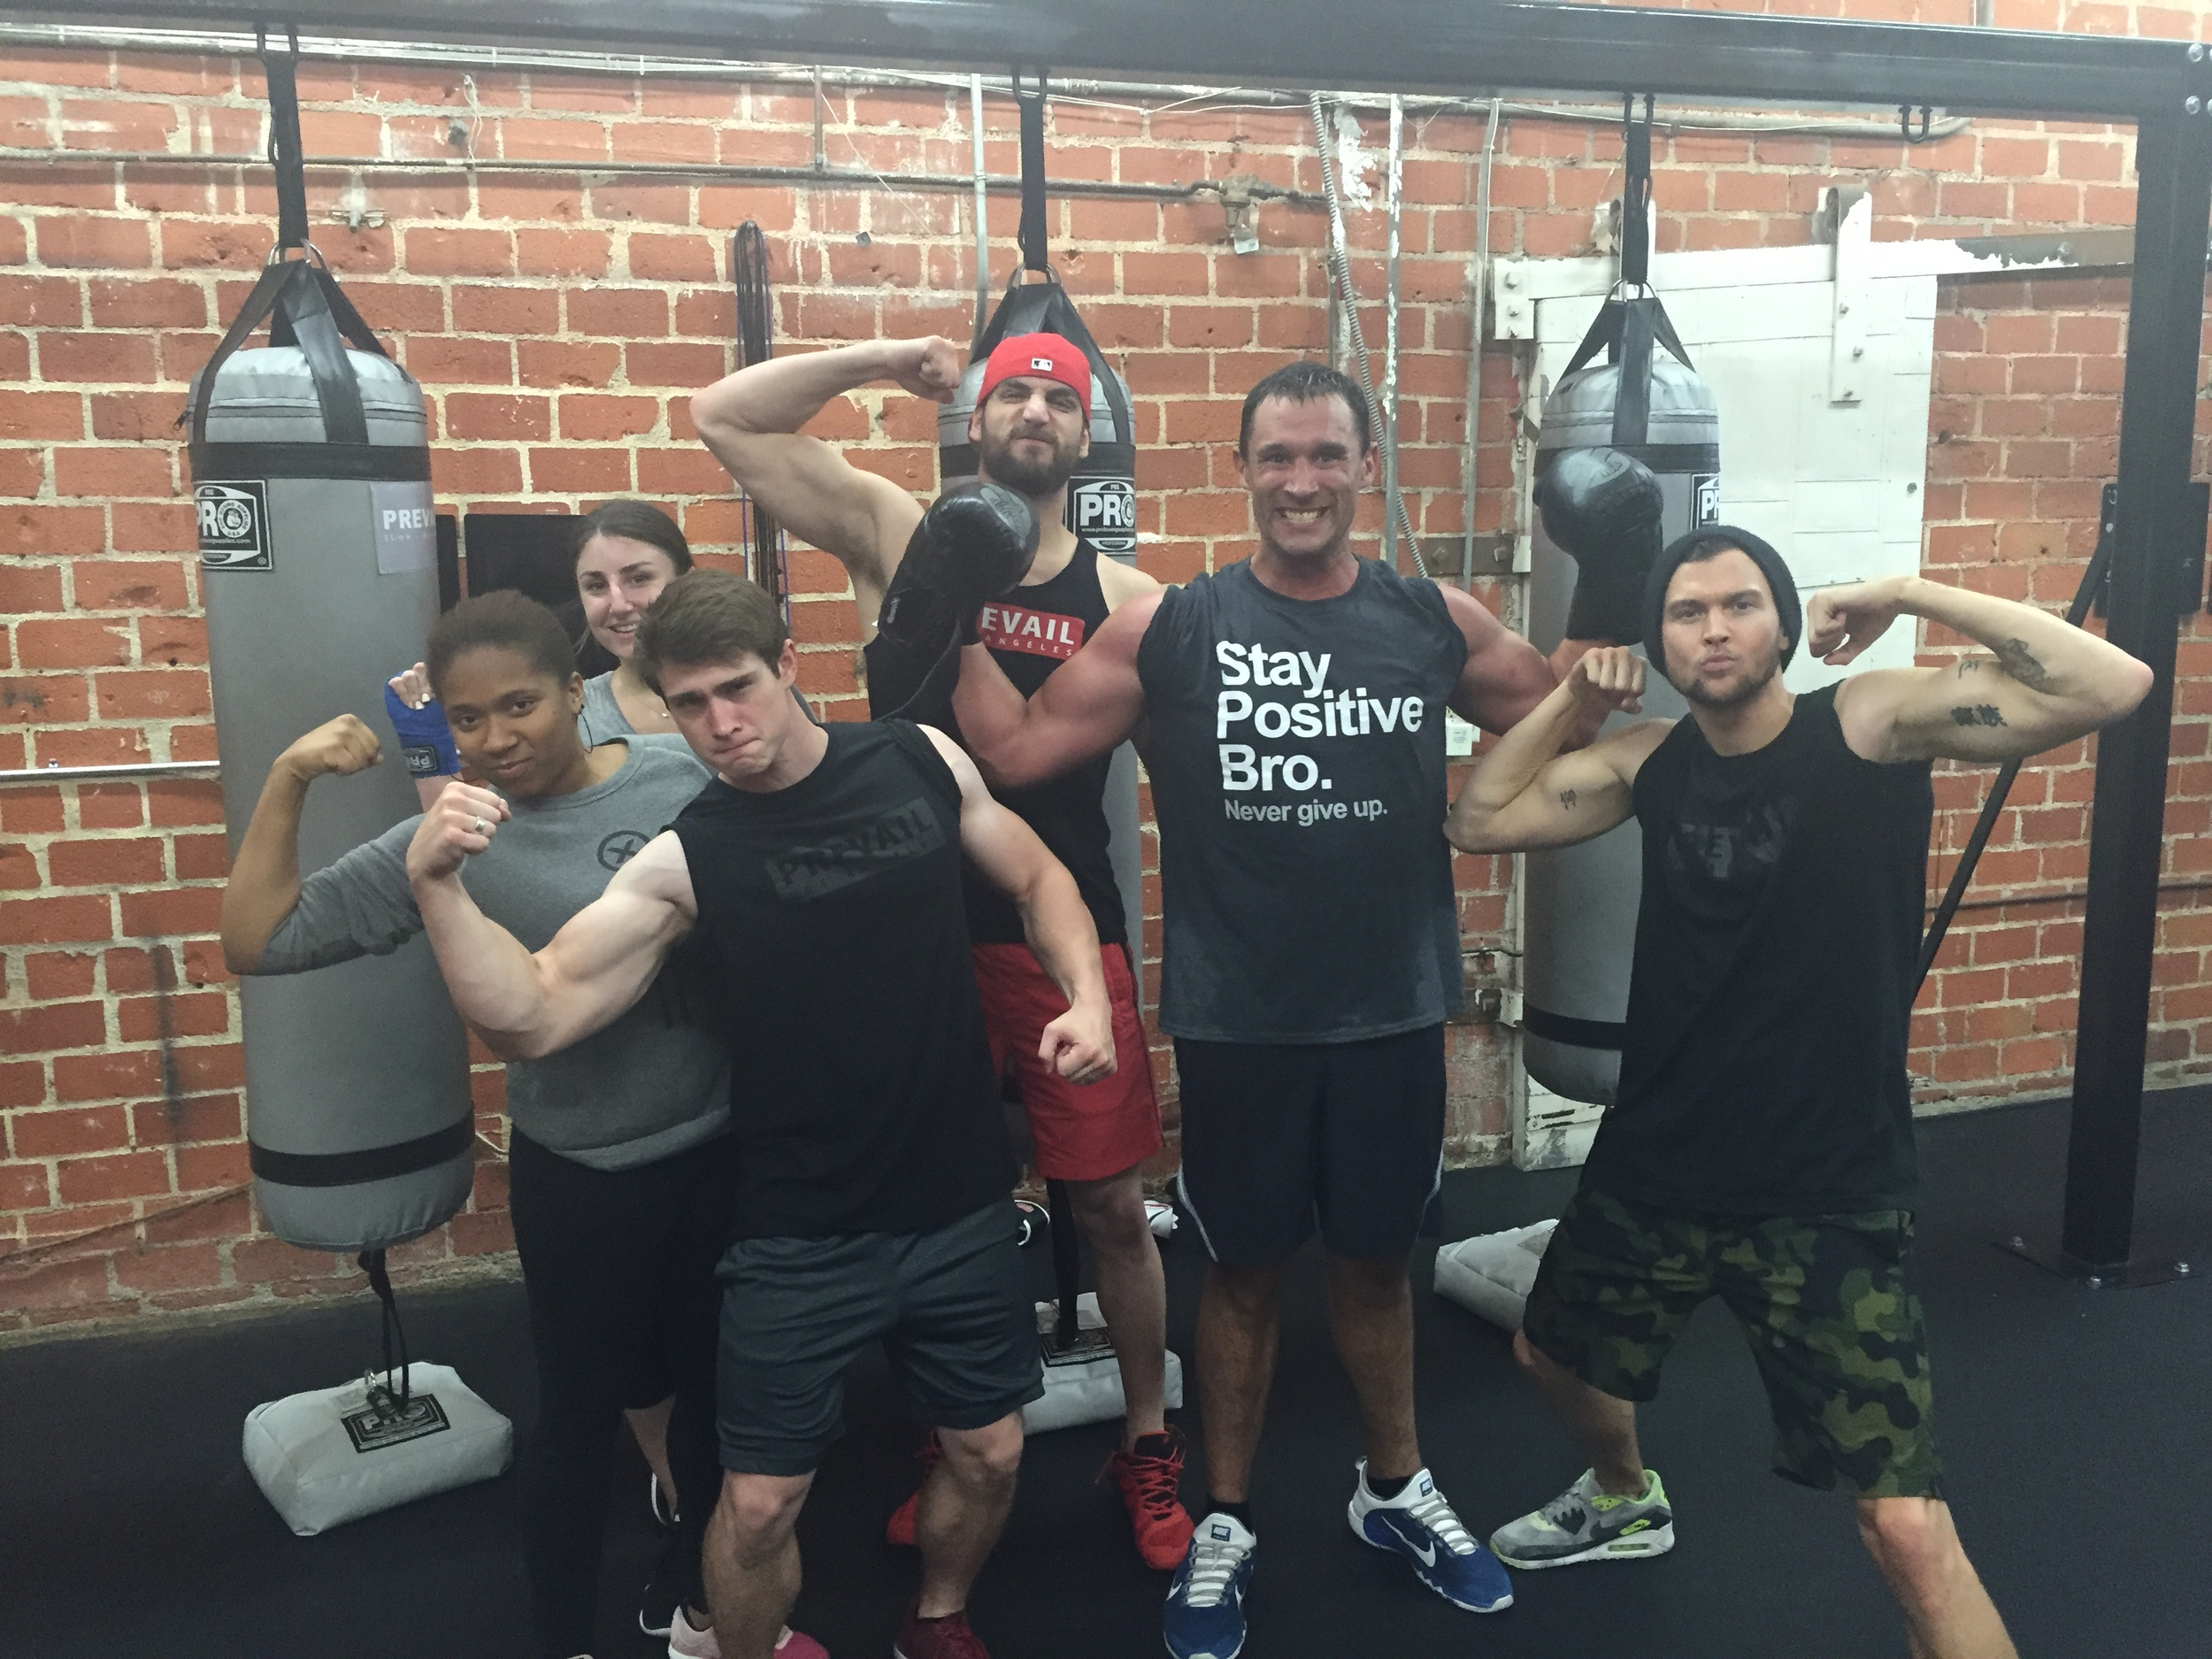 May 18, 2015 - Boxing at  Prevail Los Angeles  to set the tone the day before chemo! Big shout out to Prevail. They've been there for and with Allison and me at every step of the way! I'm so lucky to have them in my life.